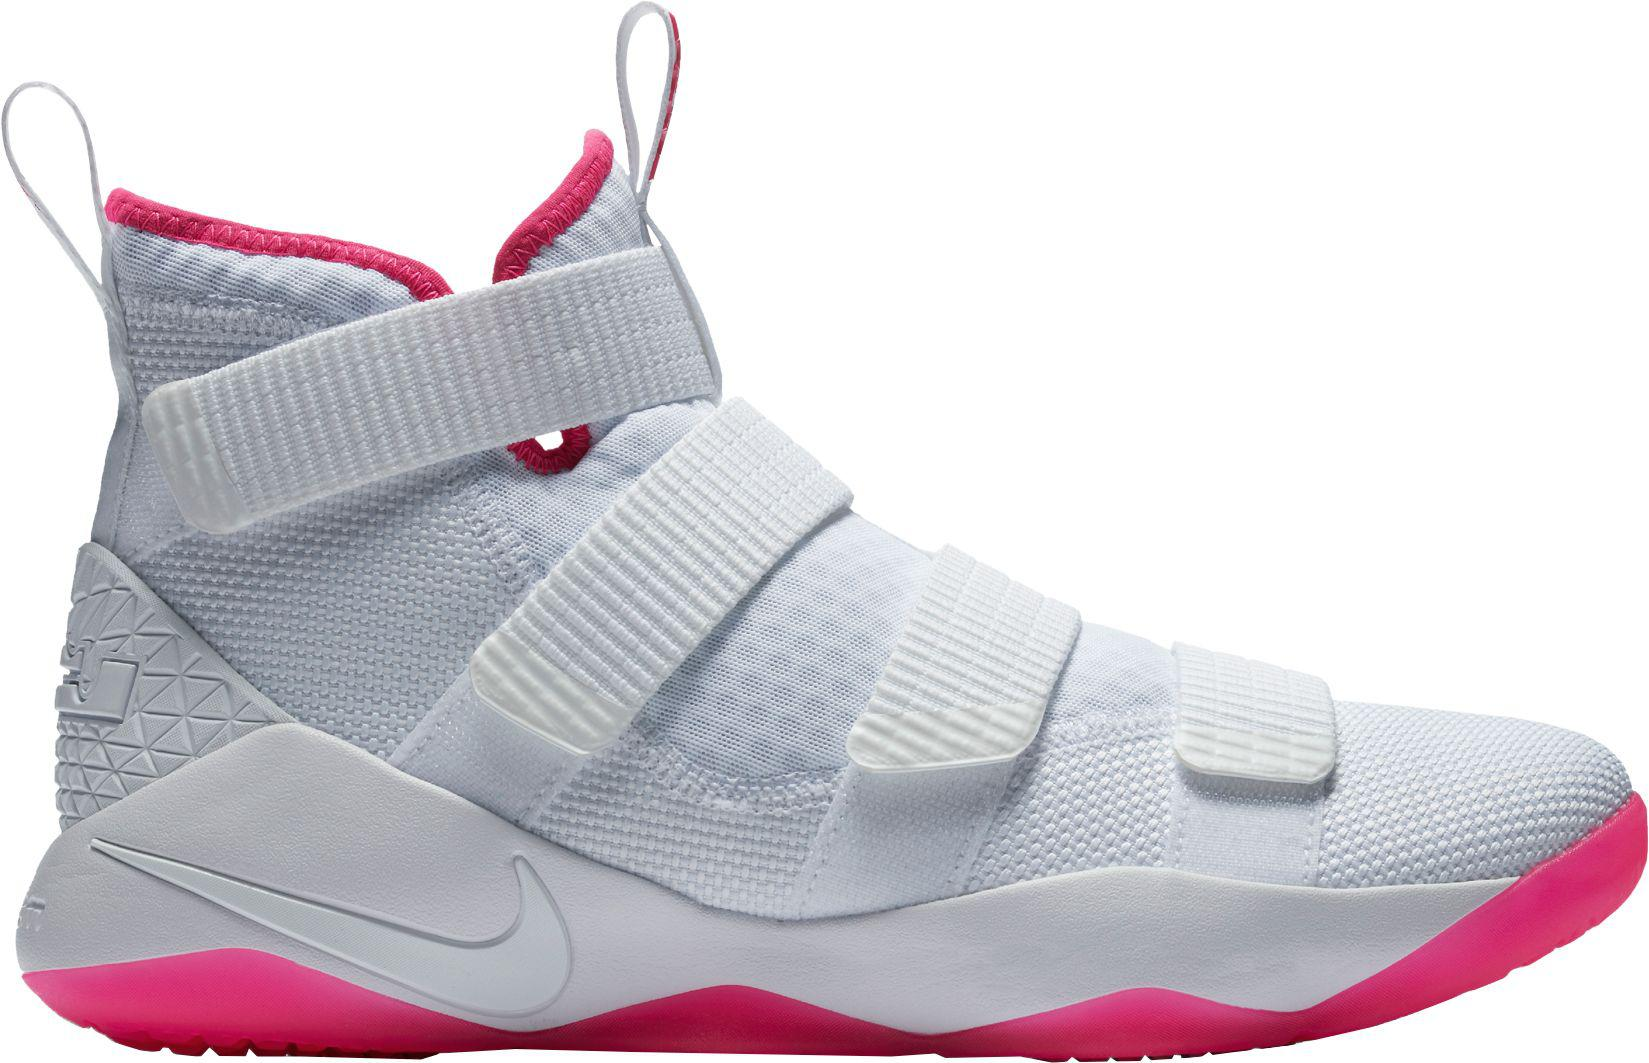 2938ba5b32a Nike - Multicolor Zoom Lebron Soldier Xi Basketball Shoes for Men - Lyst